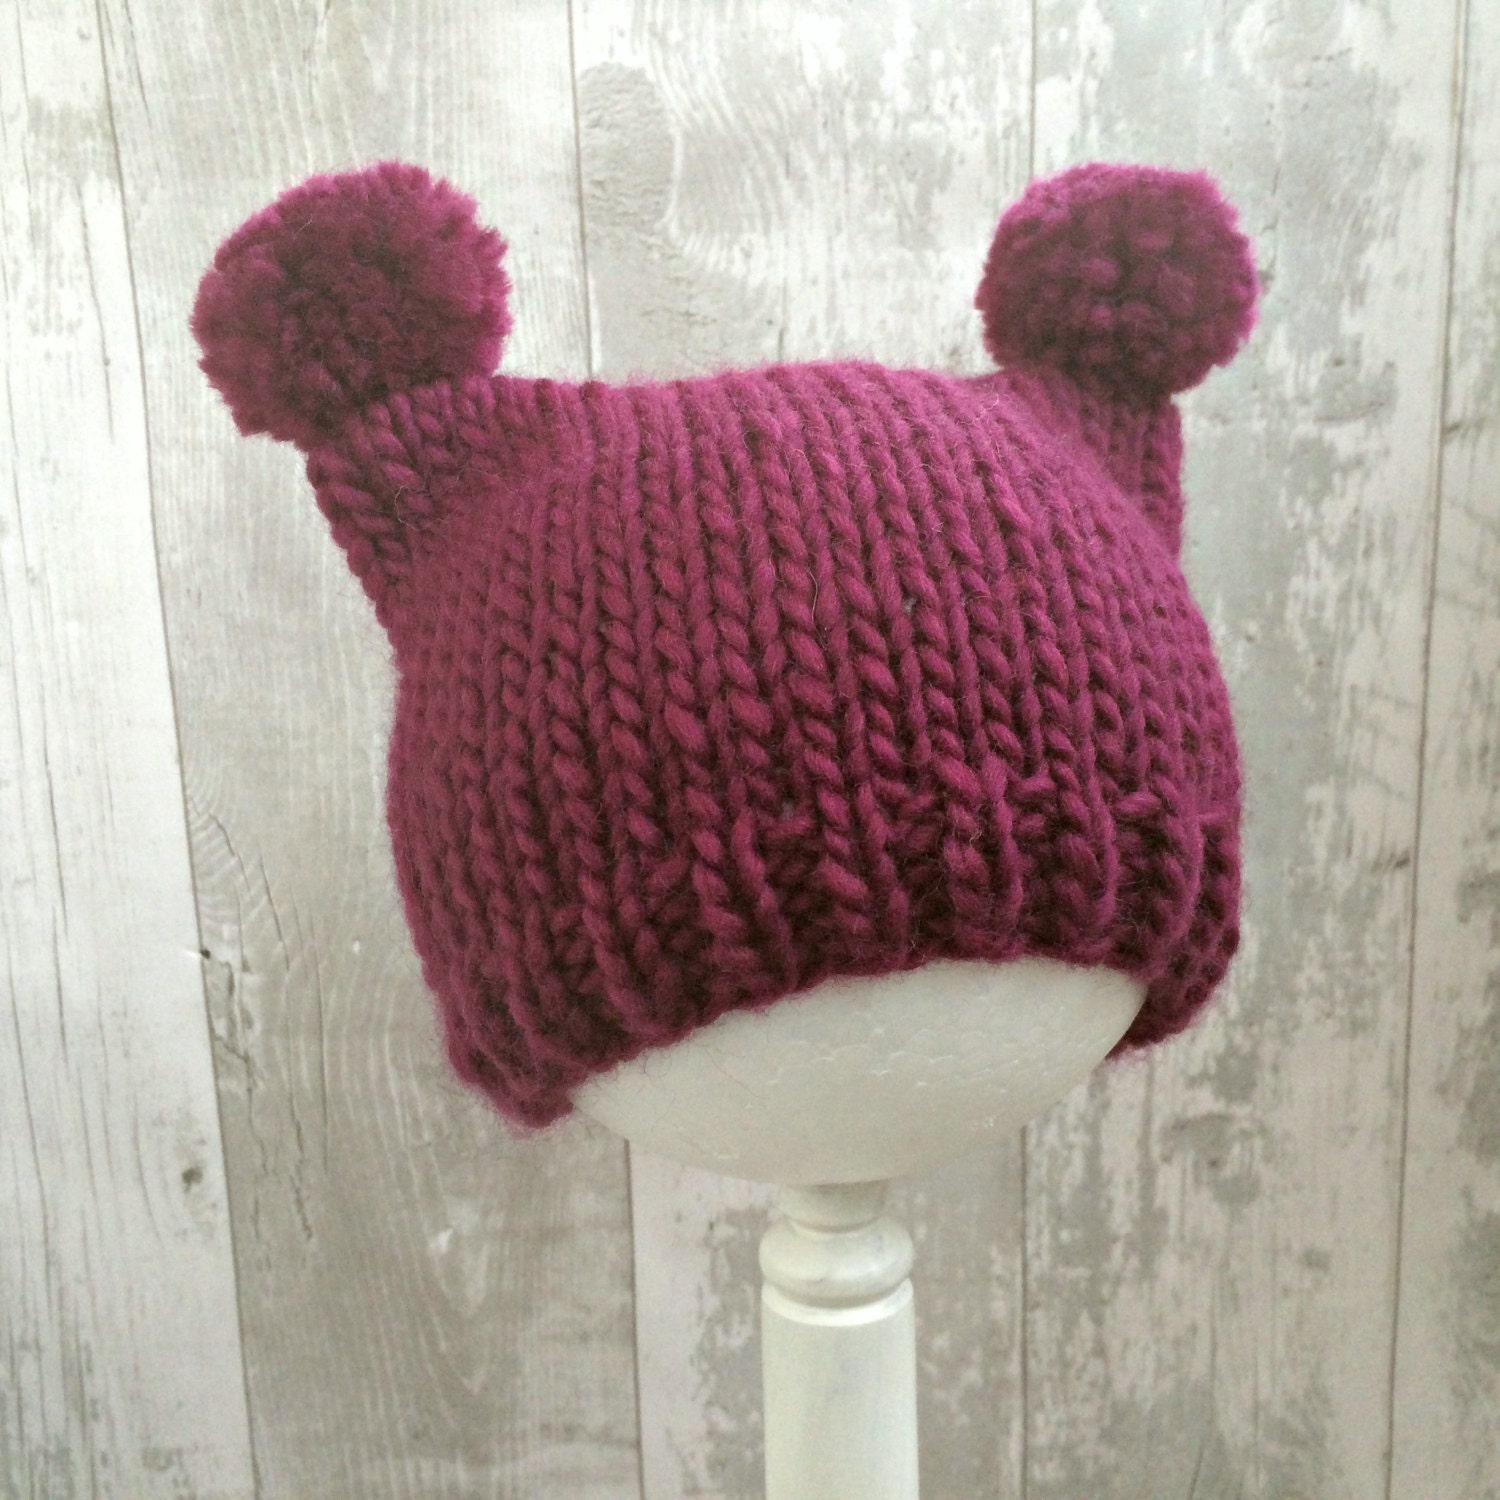 Pink Animal Ear Baby Hat Baby Pom Pom Hat  Kids Animal Hats with Ears Hand Knit Baby Hat Newborn Beanie Girl New Baby Girl Gift